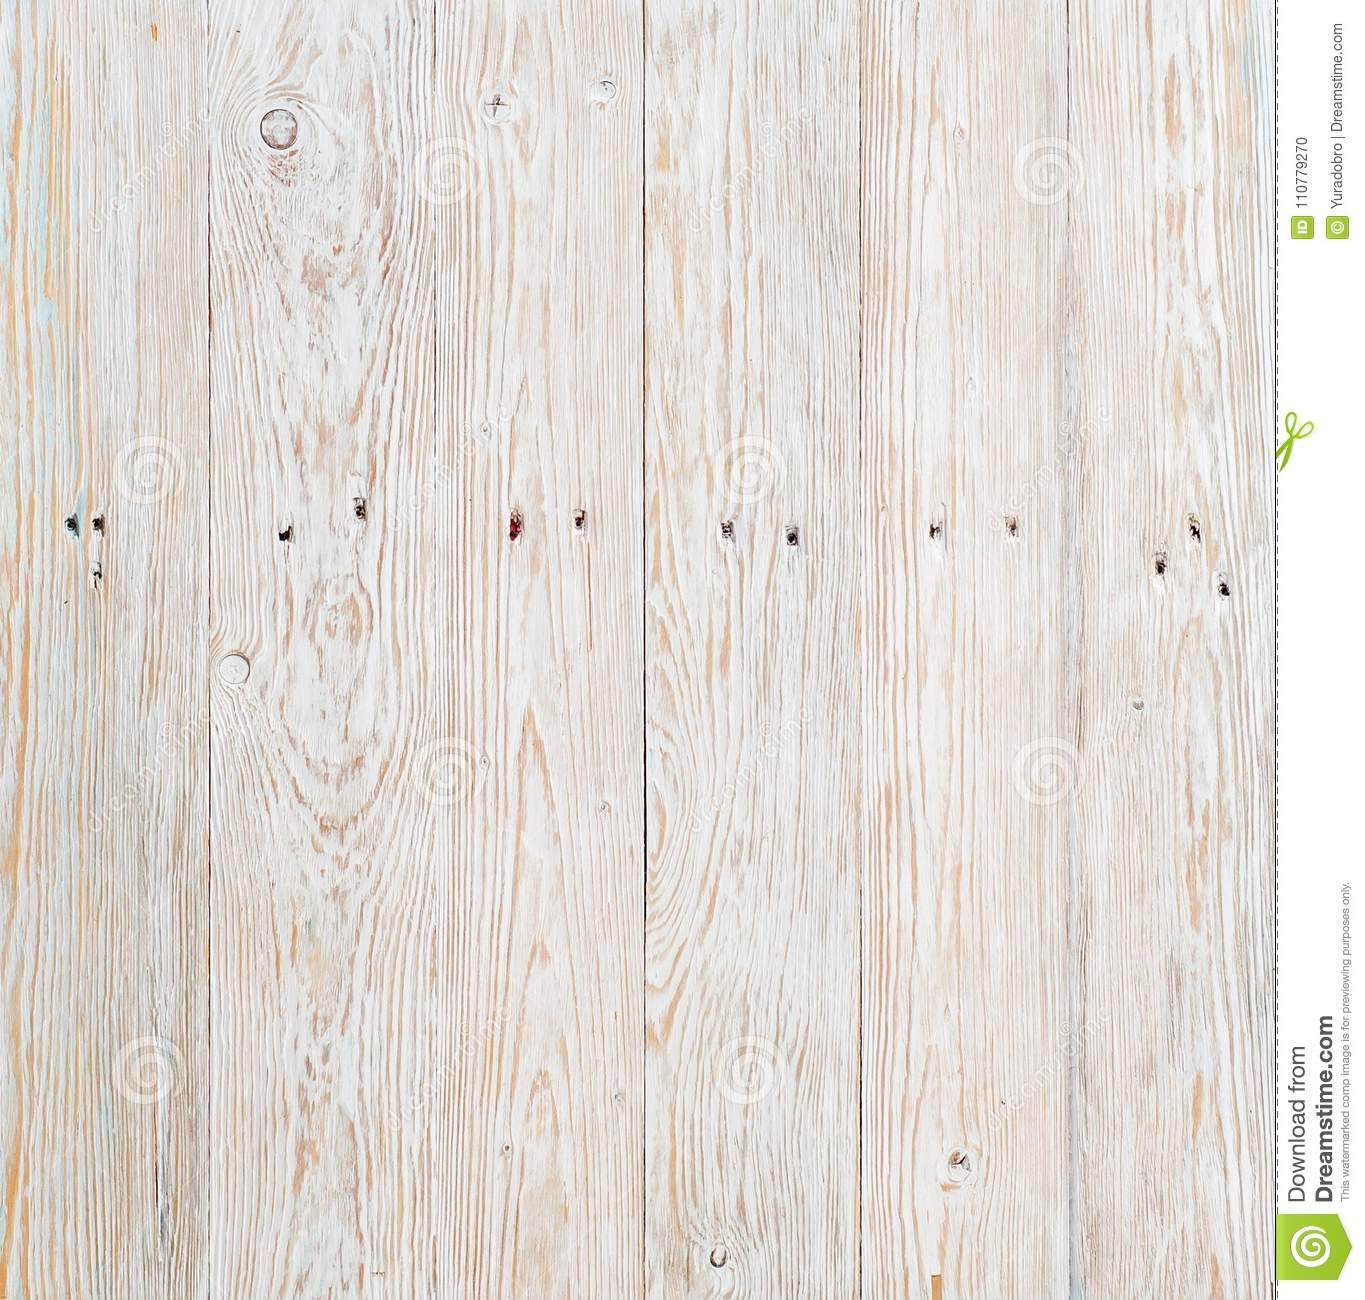 Enjoyable Wooden Background Background Of Old Colored Boards Old Interior Design Ideas Helimdqseriescom